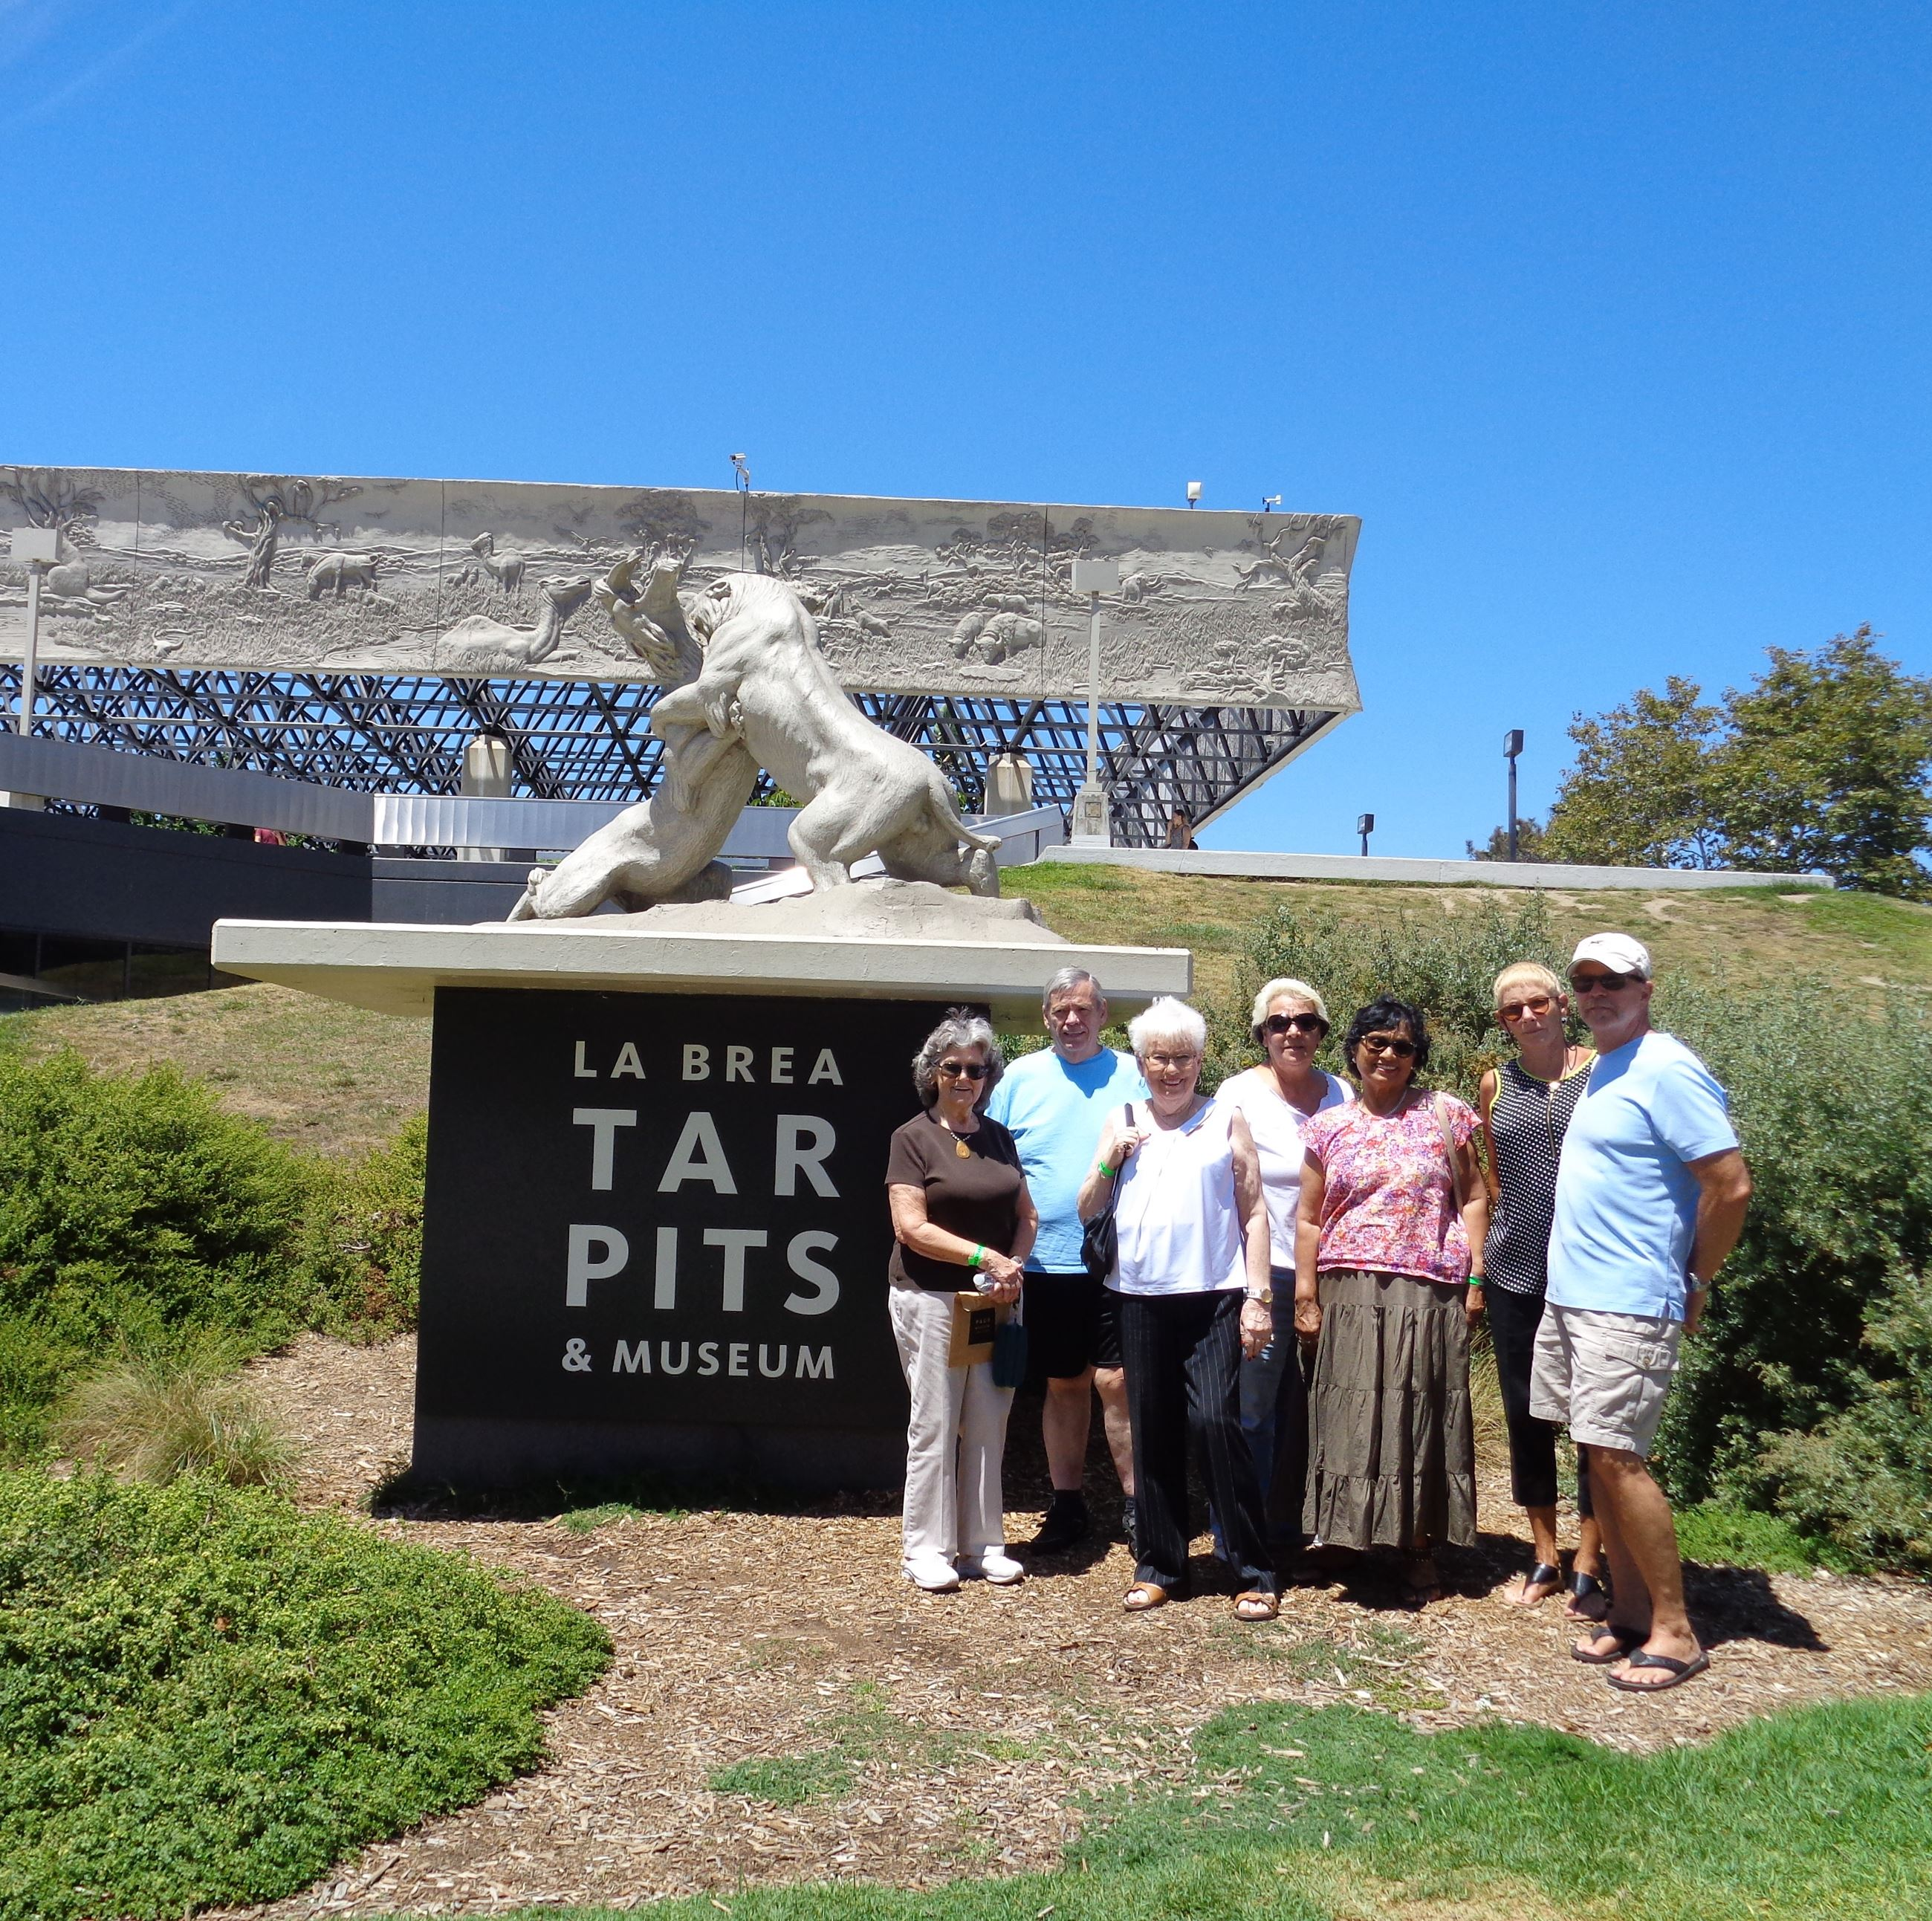 La Brea Tar Pits Excursion